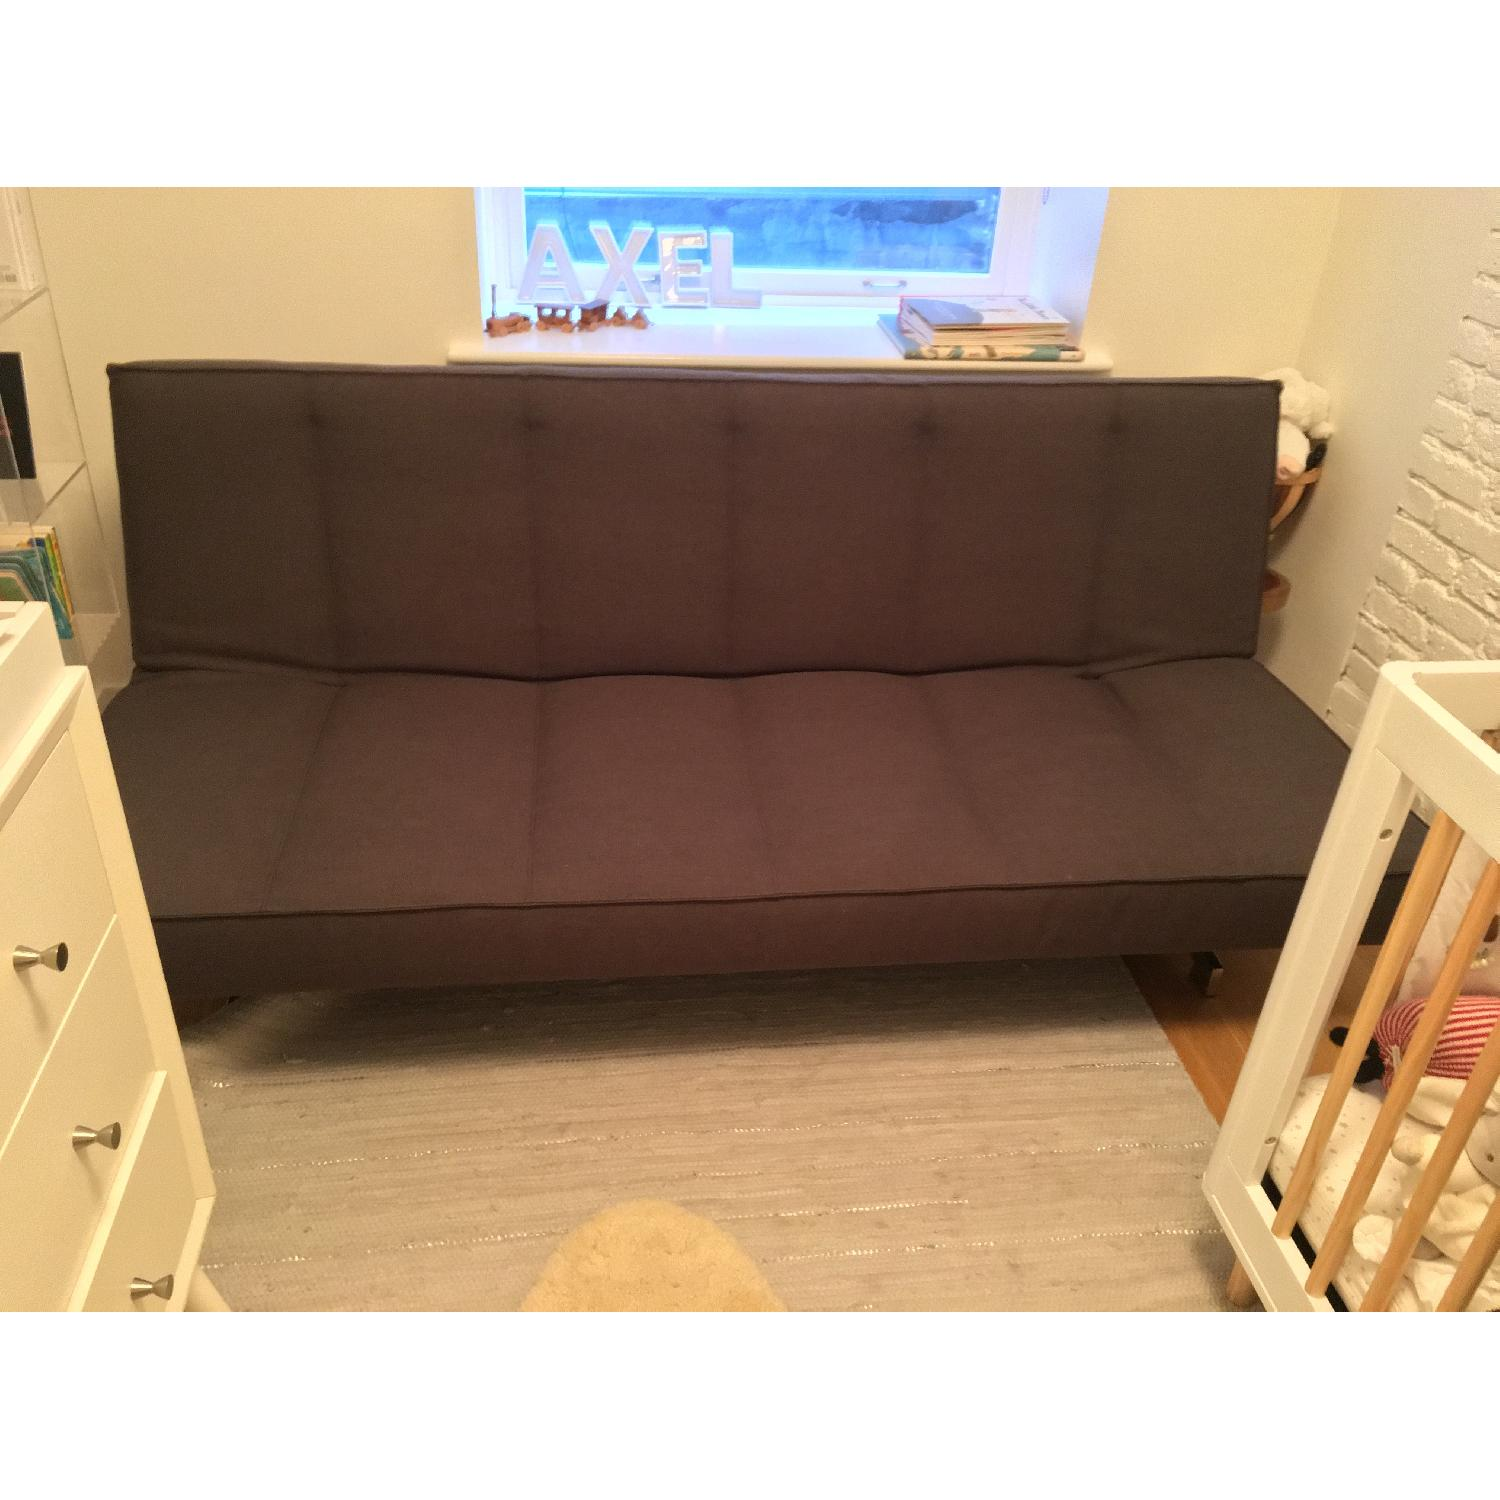 CB2 Flex Gravel Sleeper Sofa - image-9